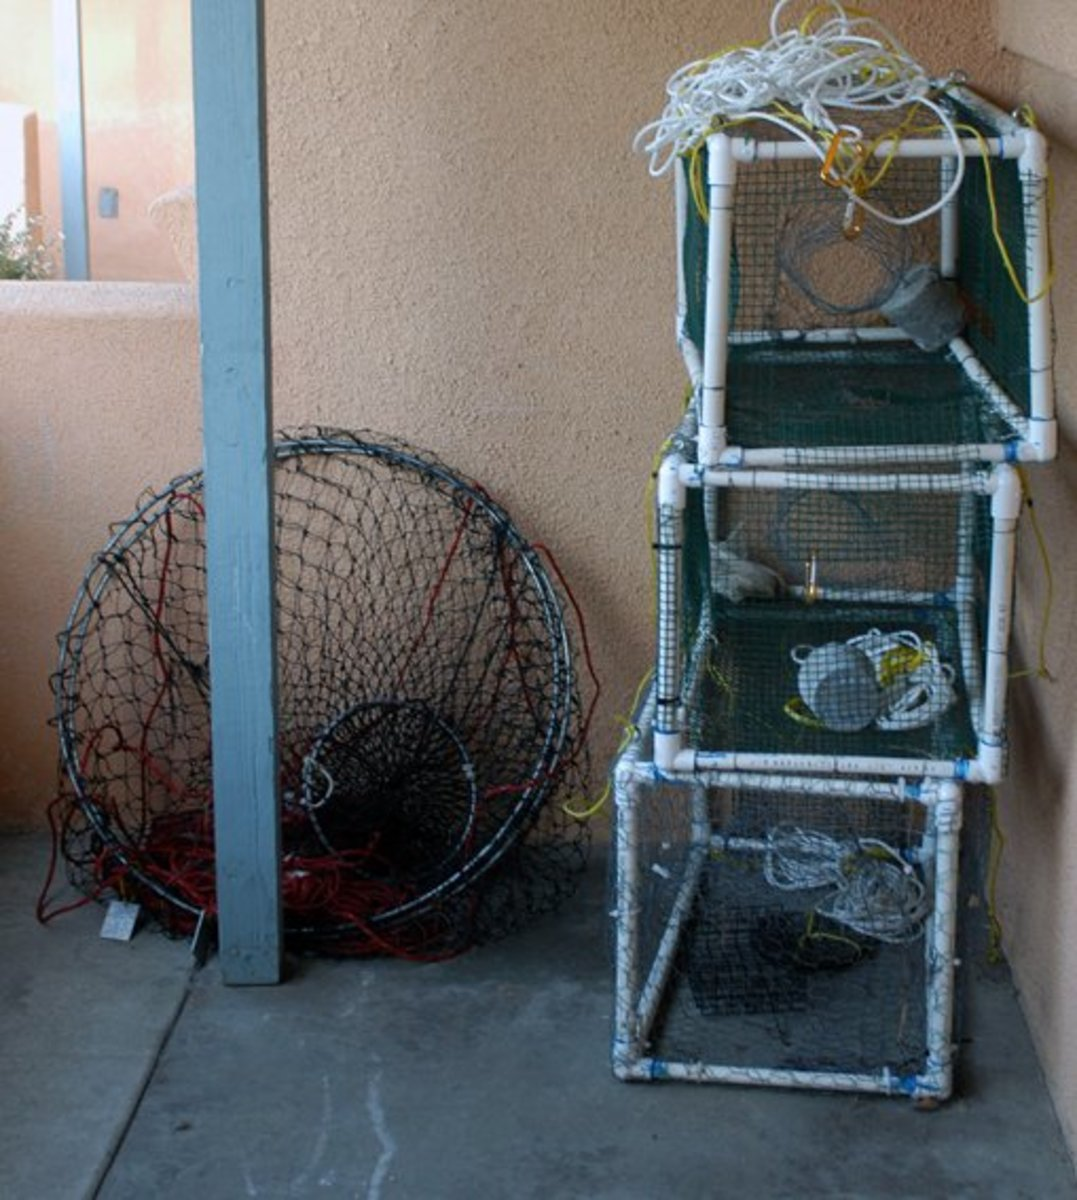 Build your own pvc crab or lobster trap skyaboveus for Homemade fish trap